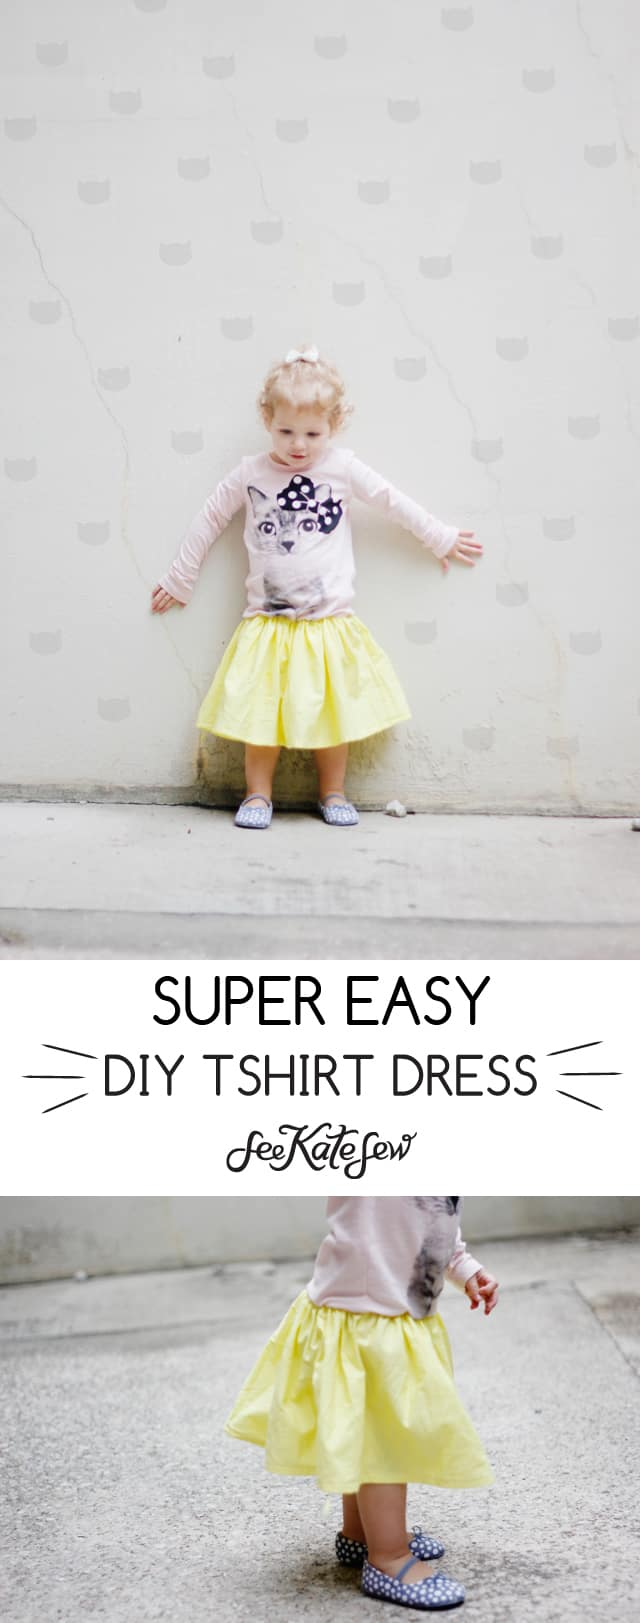 SUPER easy tshirt dress made with a graphic tee and less than 1 yard of fabric!